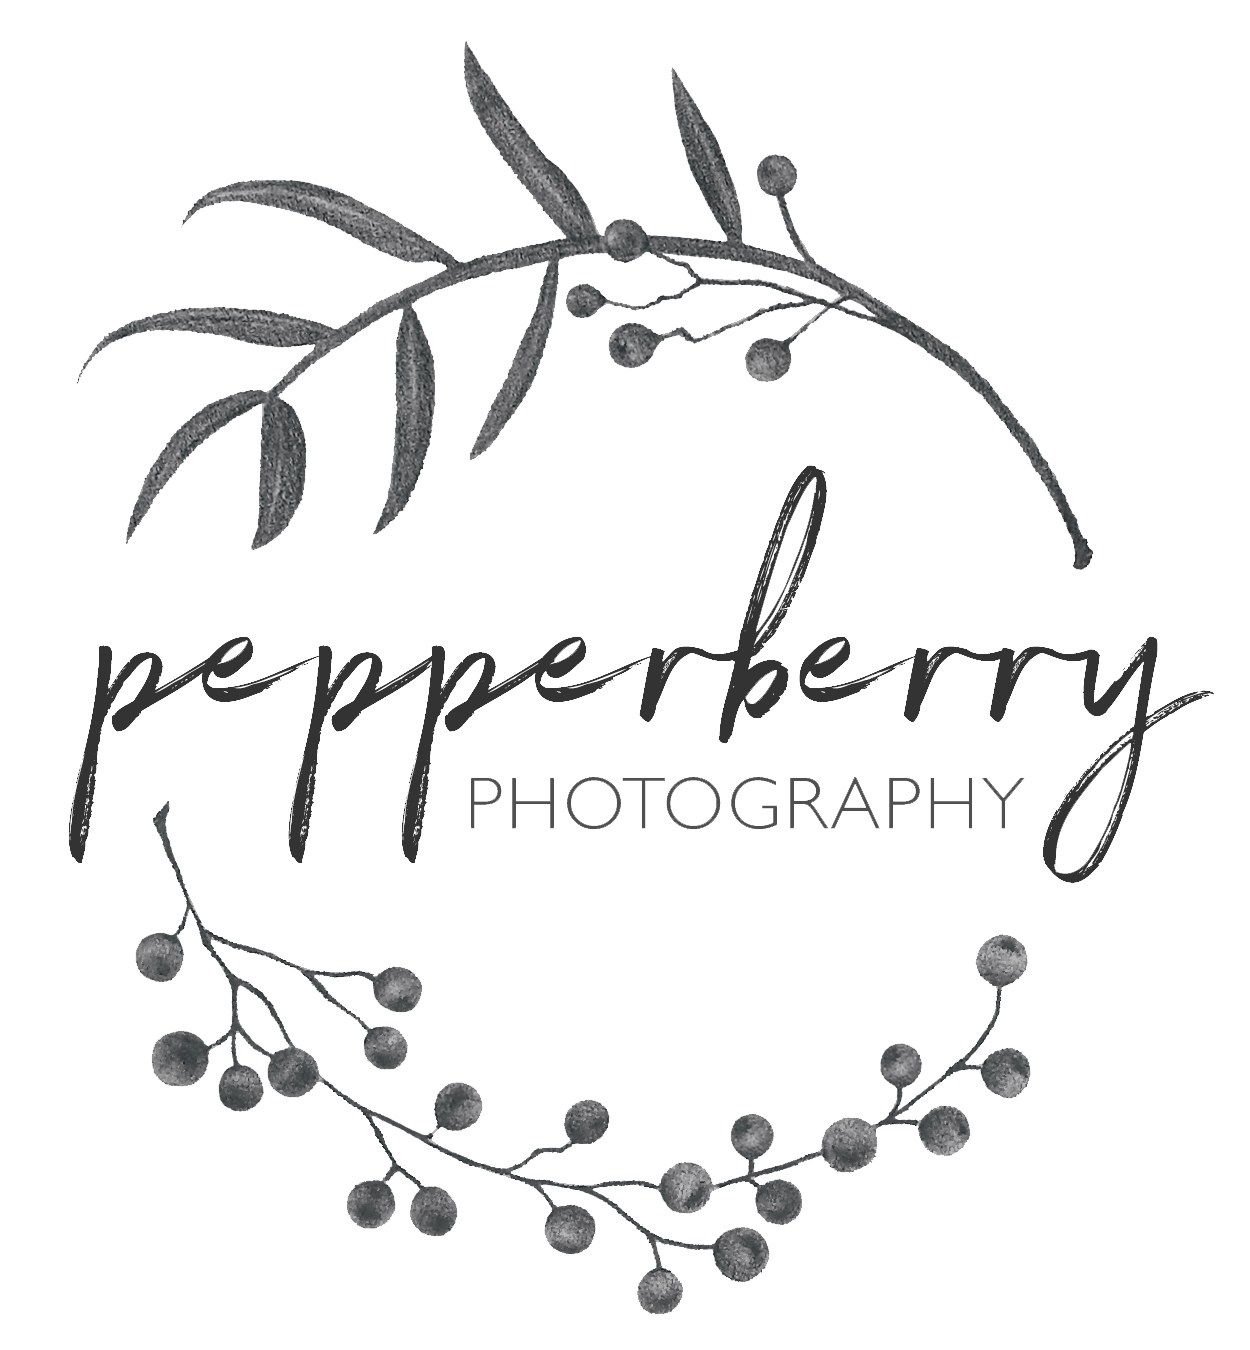 Pepperberry Photography